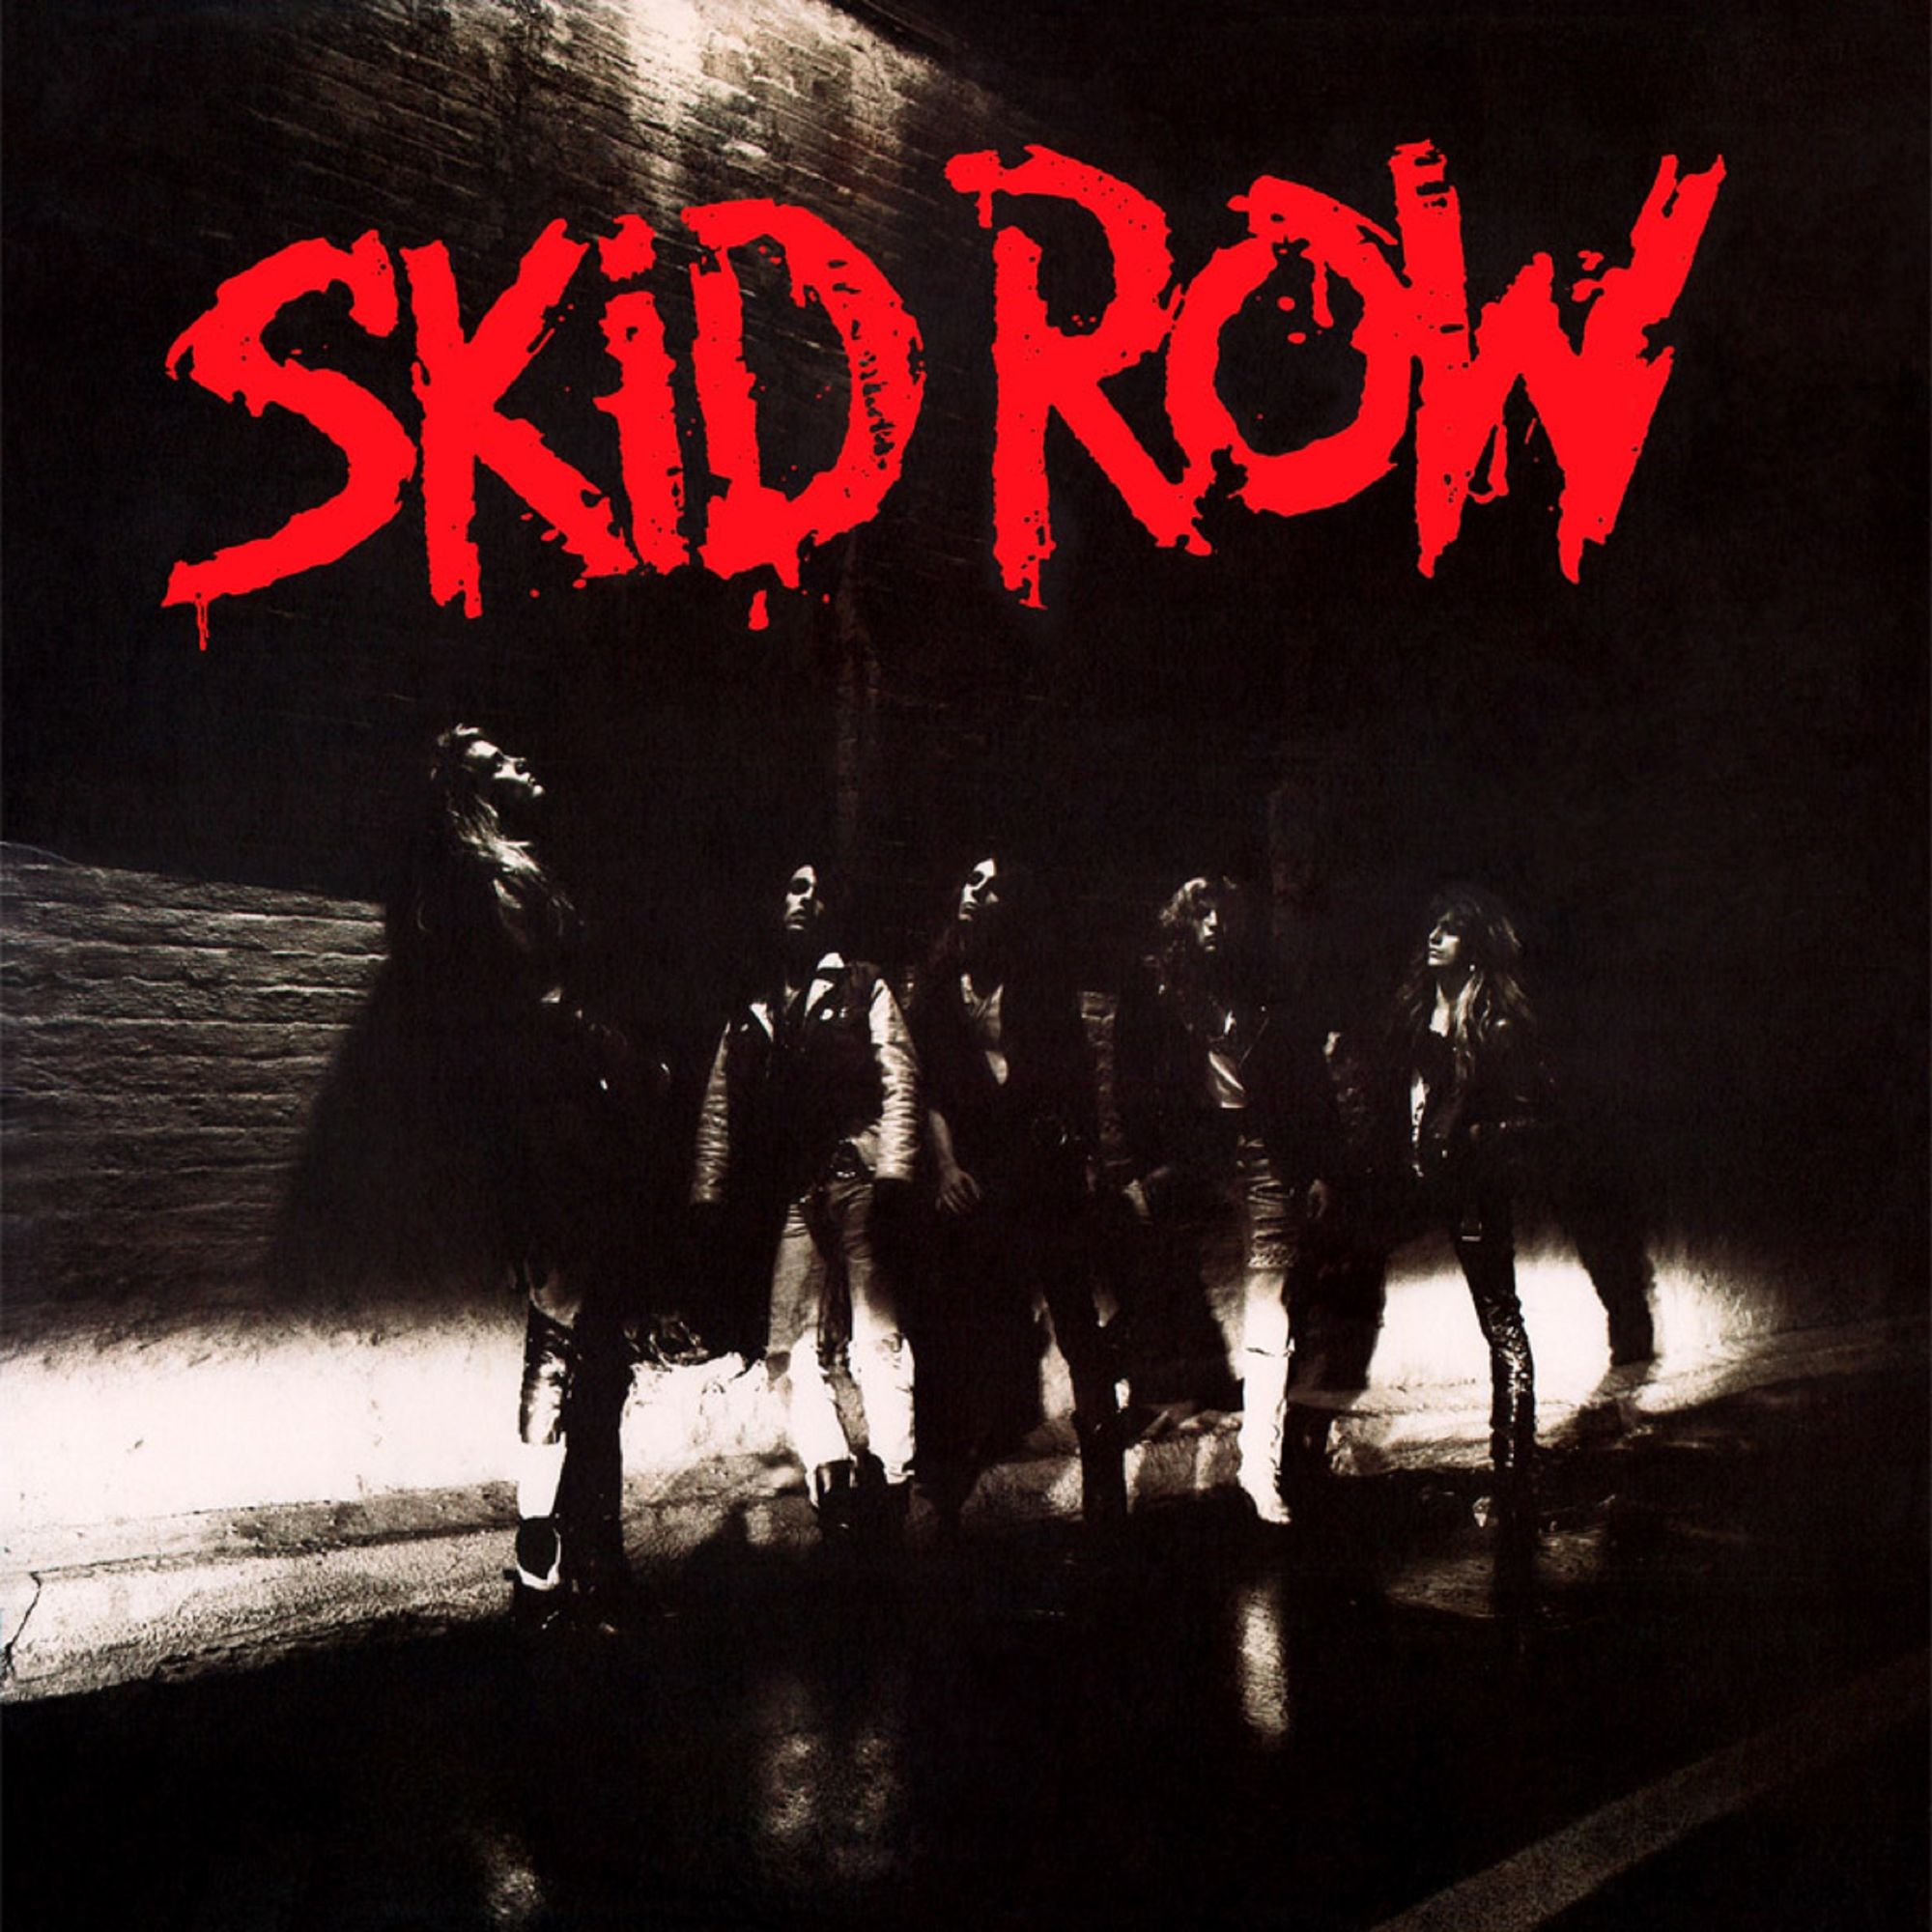 Skid Row (180 Gram Translucent Red Vinyl/Limited 30th Anniversary Edition)